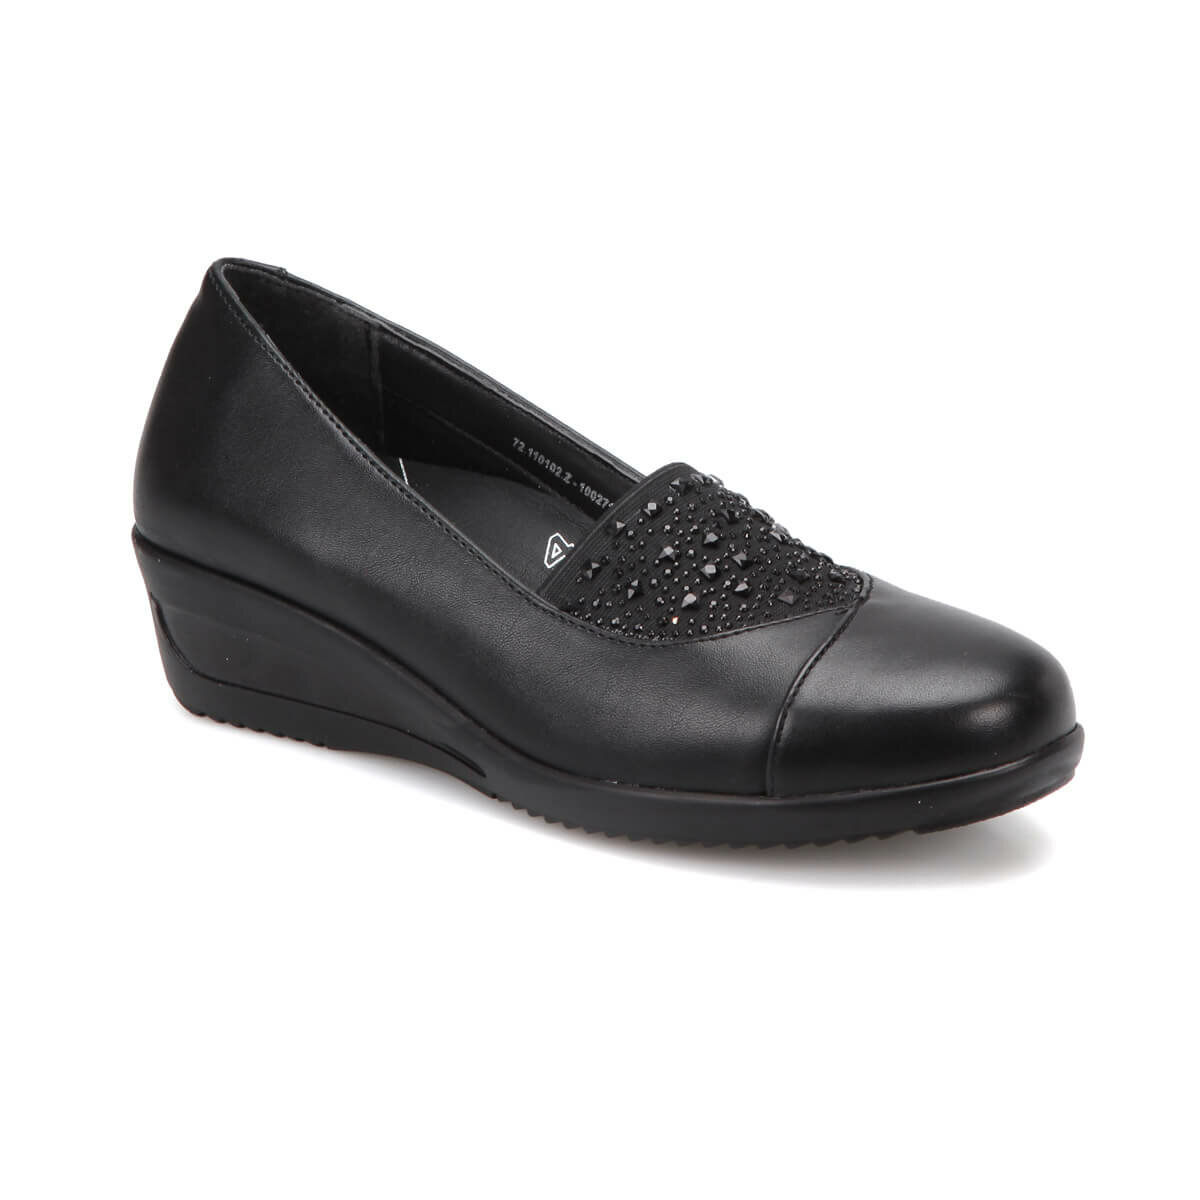 FLO 72. 110102.Z Black Women Shoes Polaris 5 Point